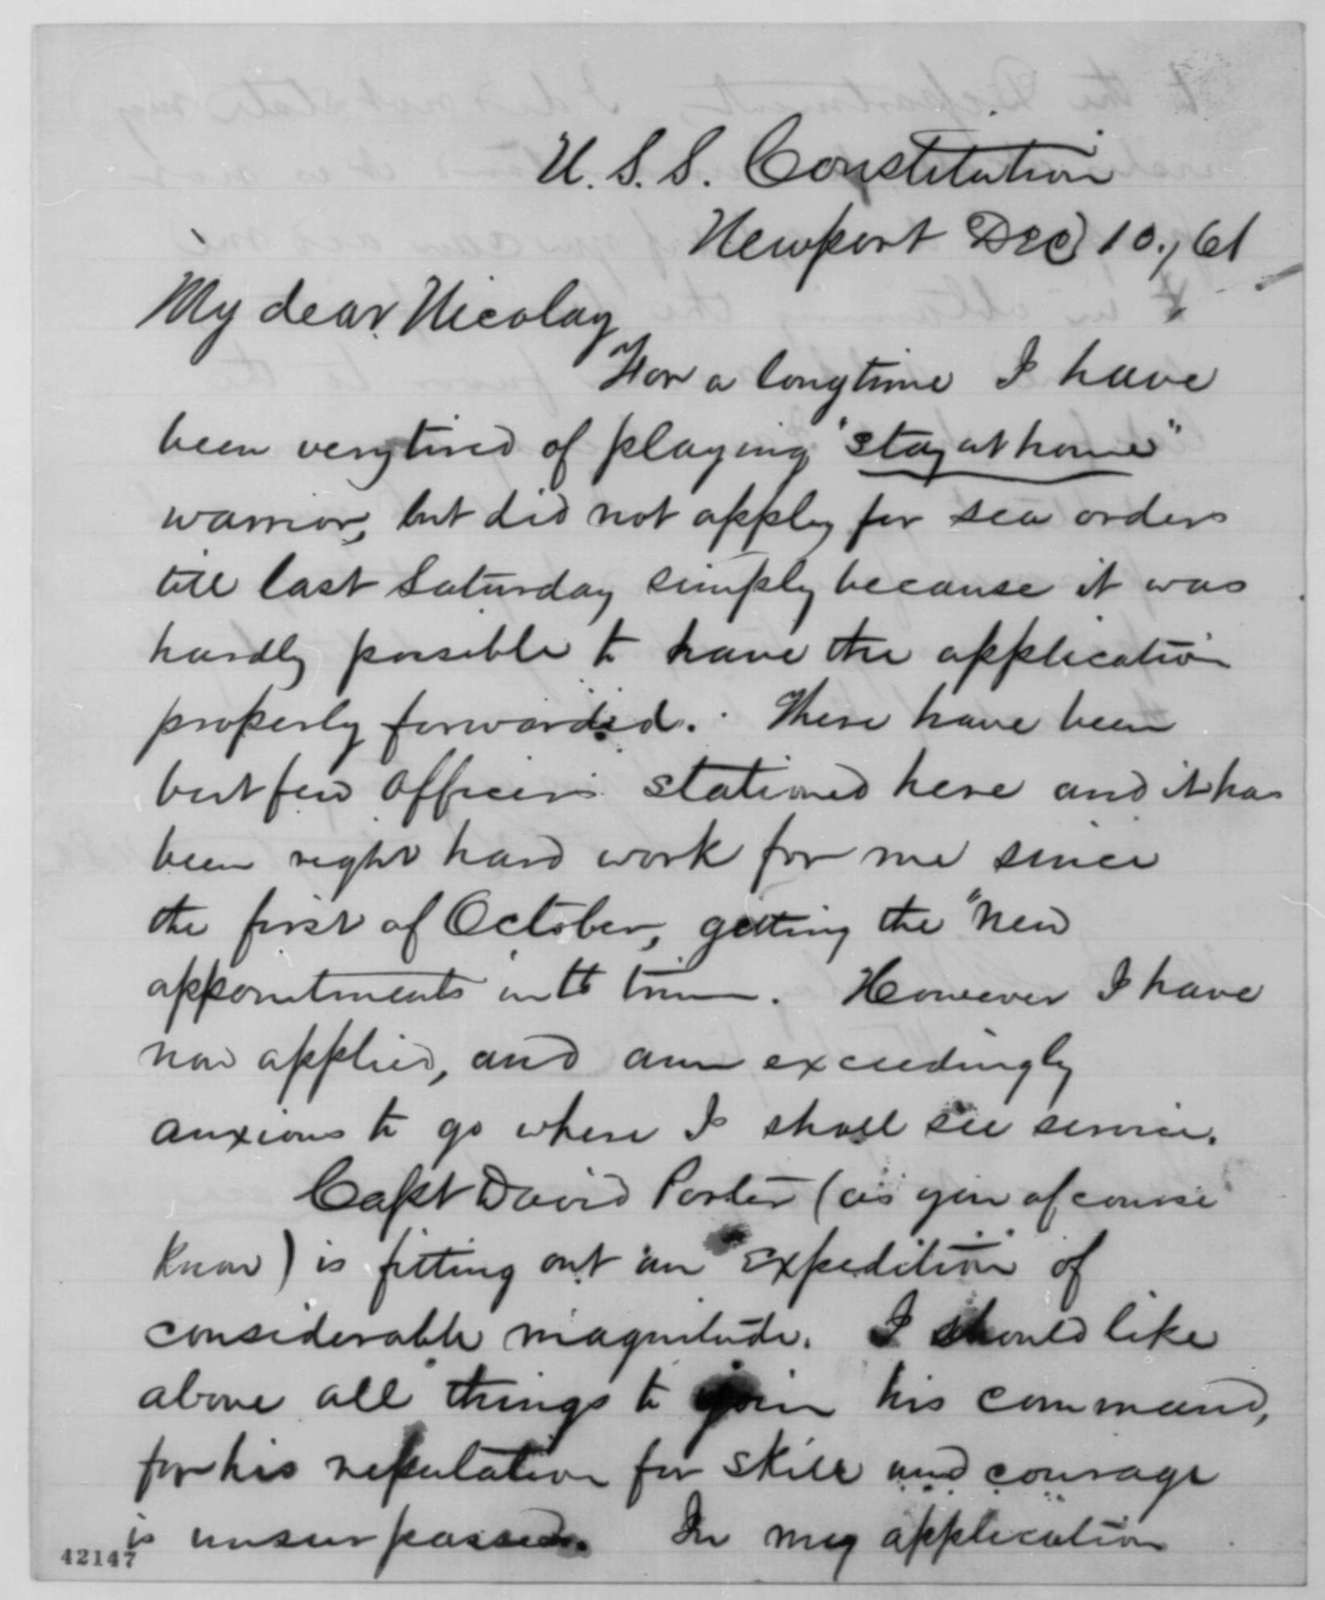 Charles L. Huntington to John G. Nicolay, Tuesday, December 10, 1861  (Wants to join David Porter's expedition)